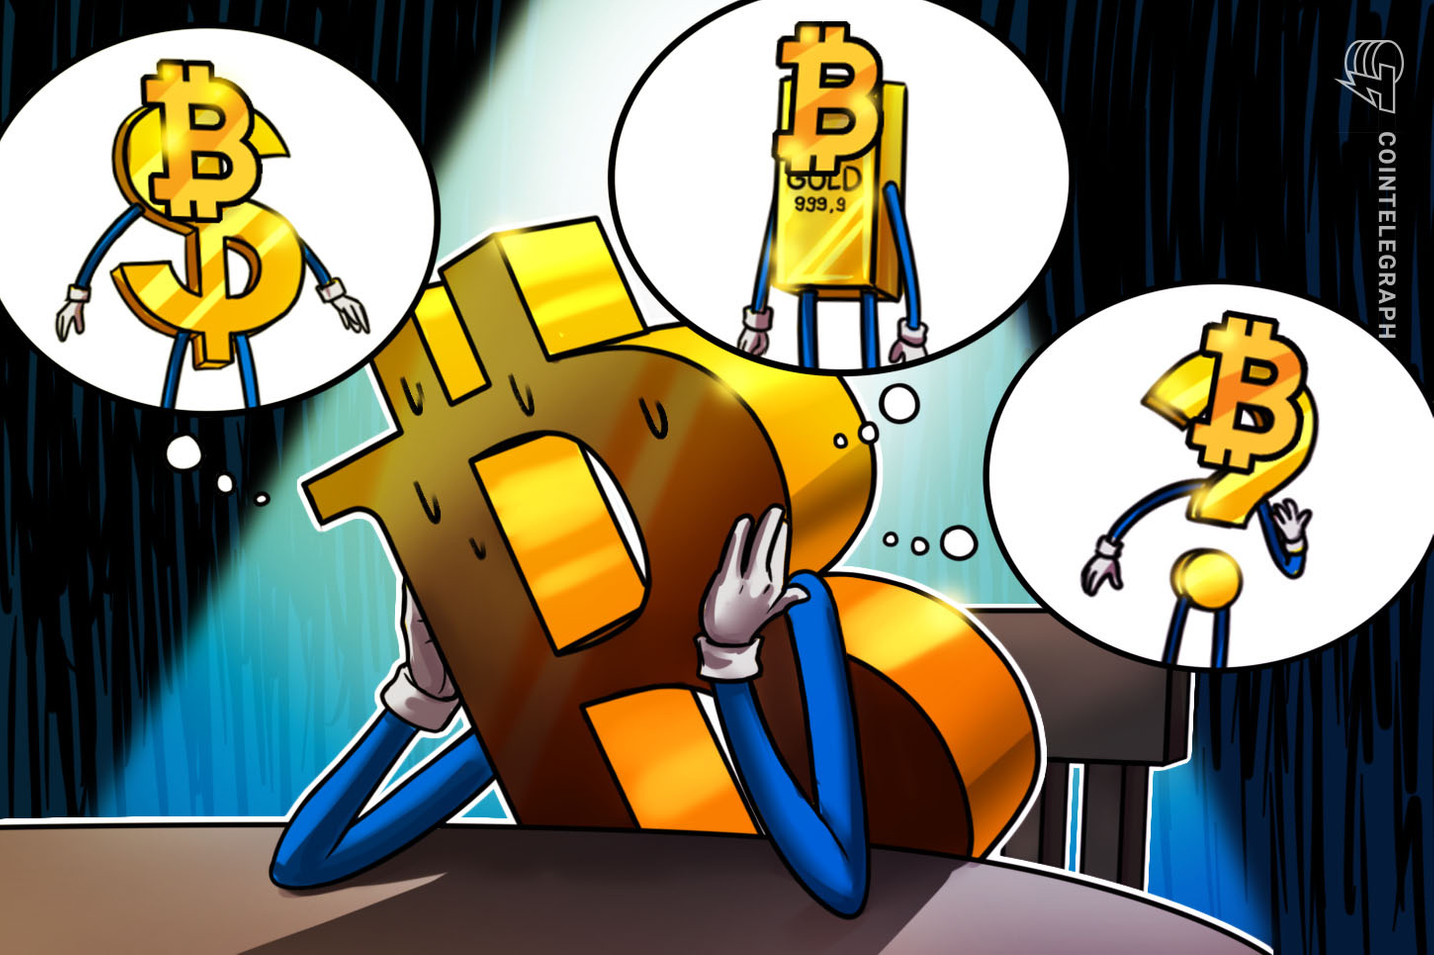 Defining Bitcoin: Money, Currency or Store of Value